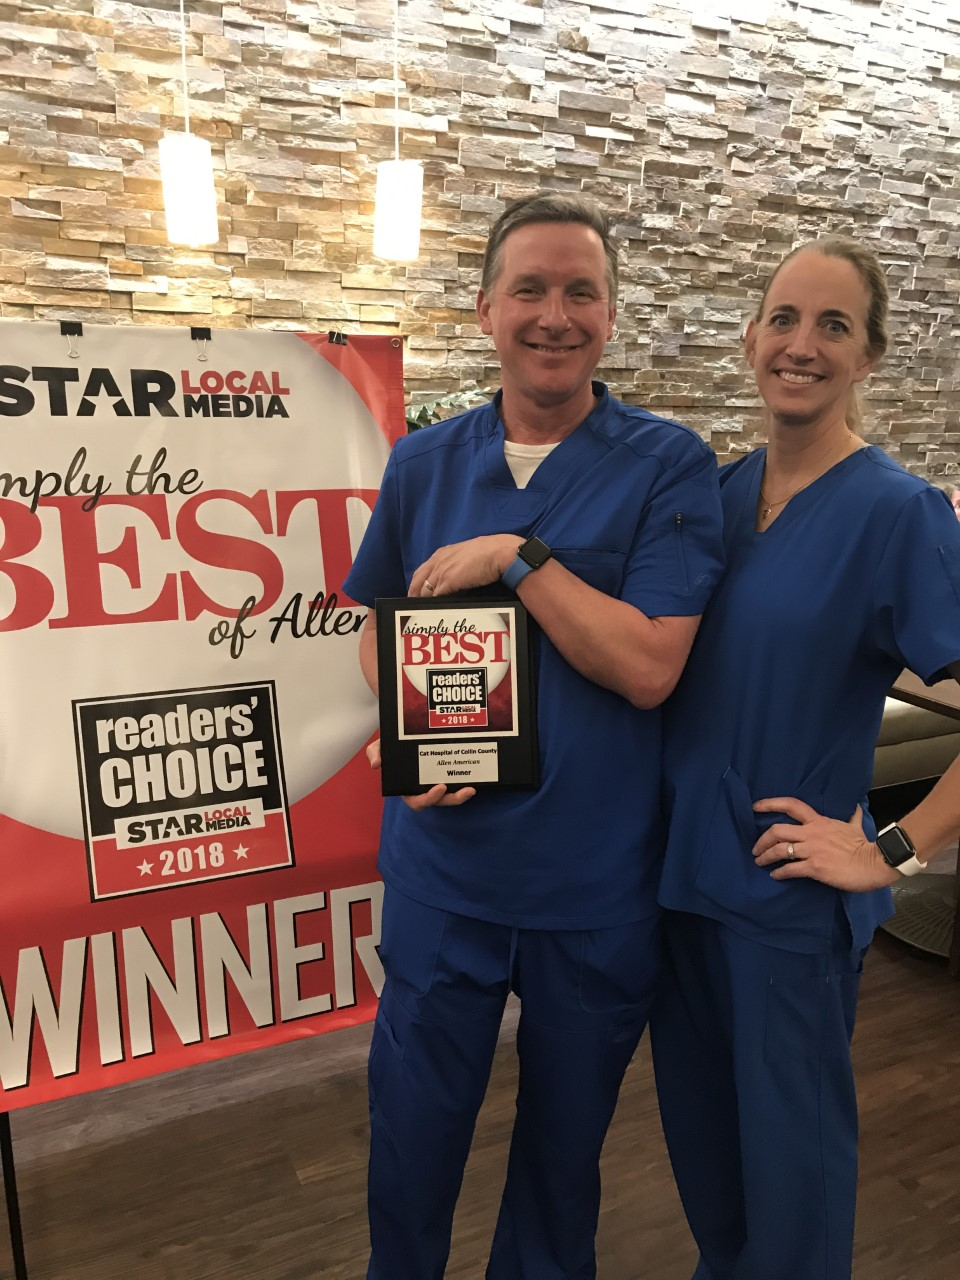 local star media readers choice